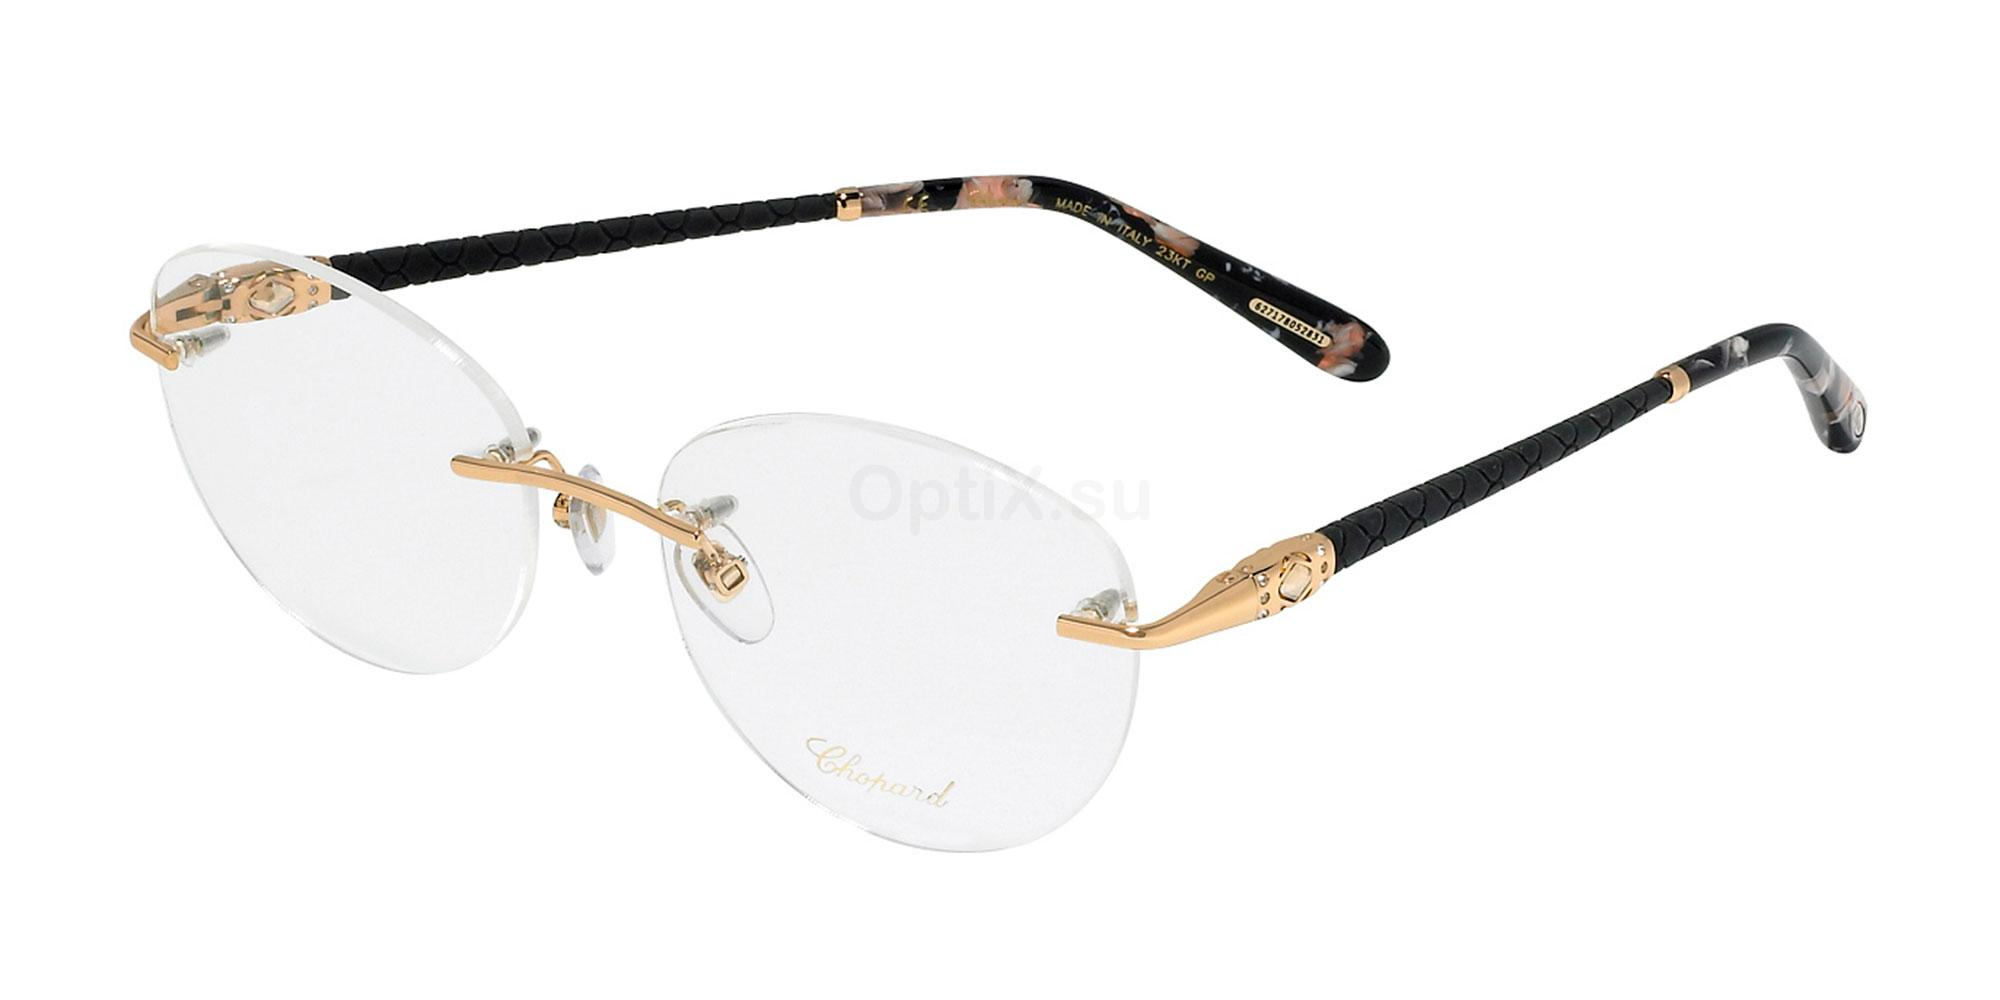 0300 VCHC71S Glasses, Chopard